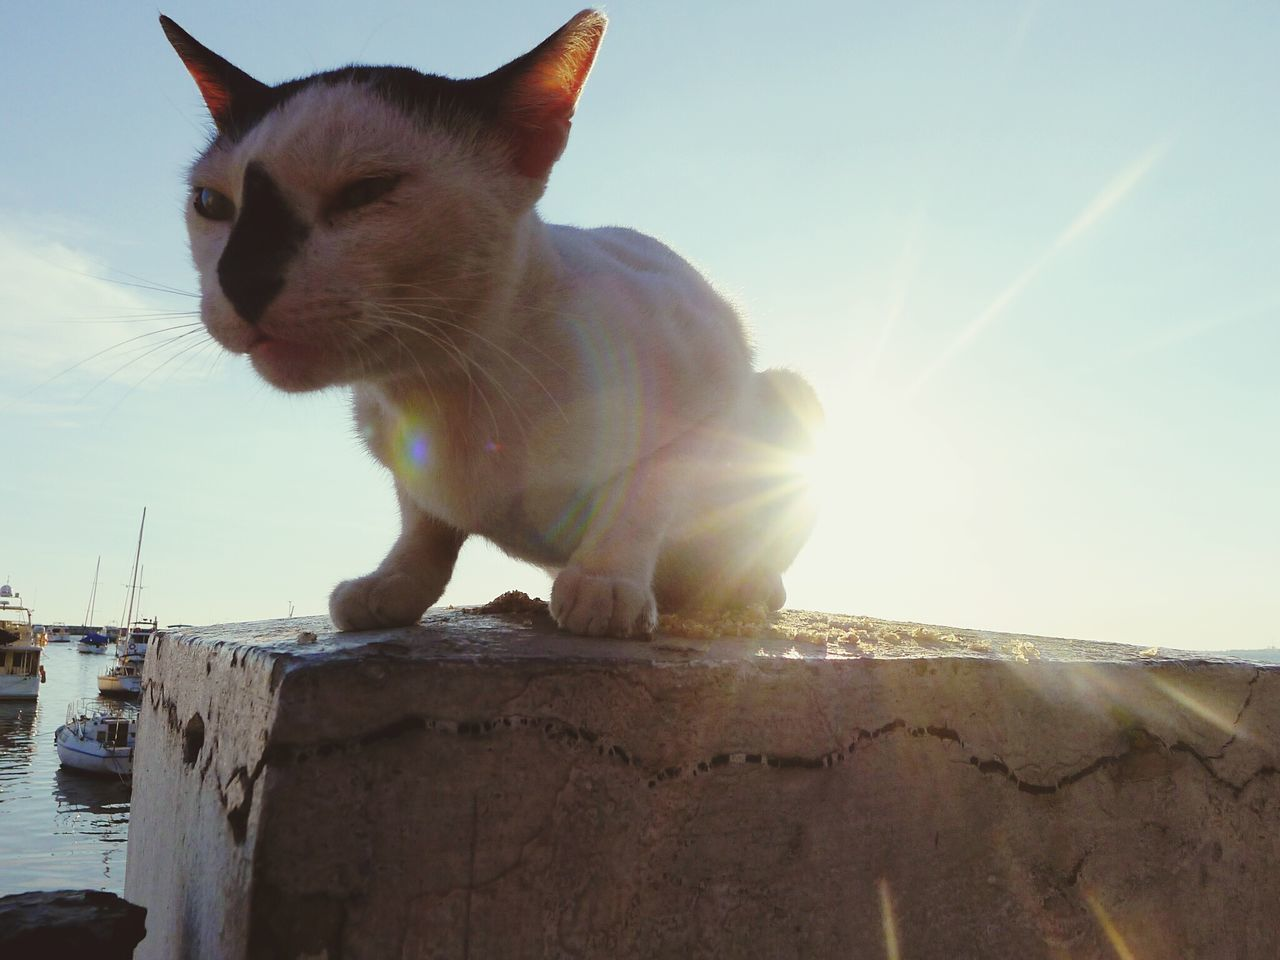 domestic cat, pets, animal themes, one animal, domestic animals, feline, mammal, sitting, sunlight, no people, day, sky, outdoors, siamese cat, nature, close-up